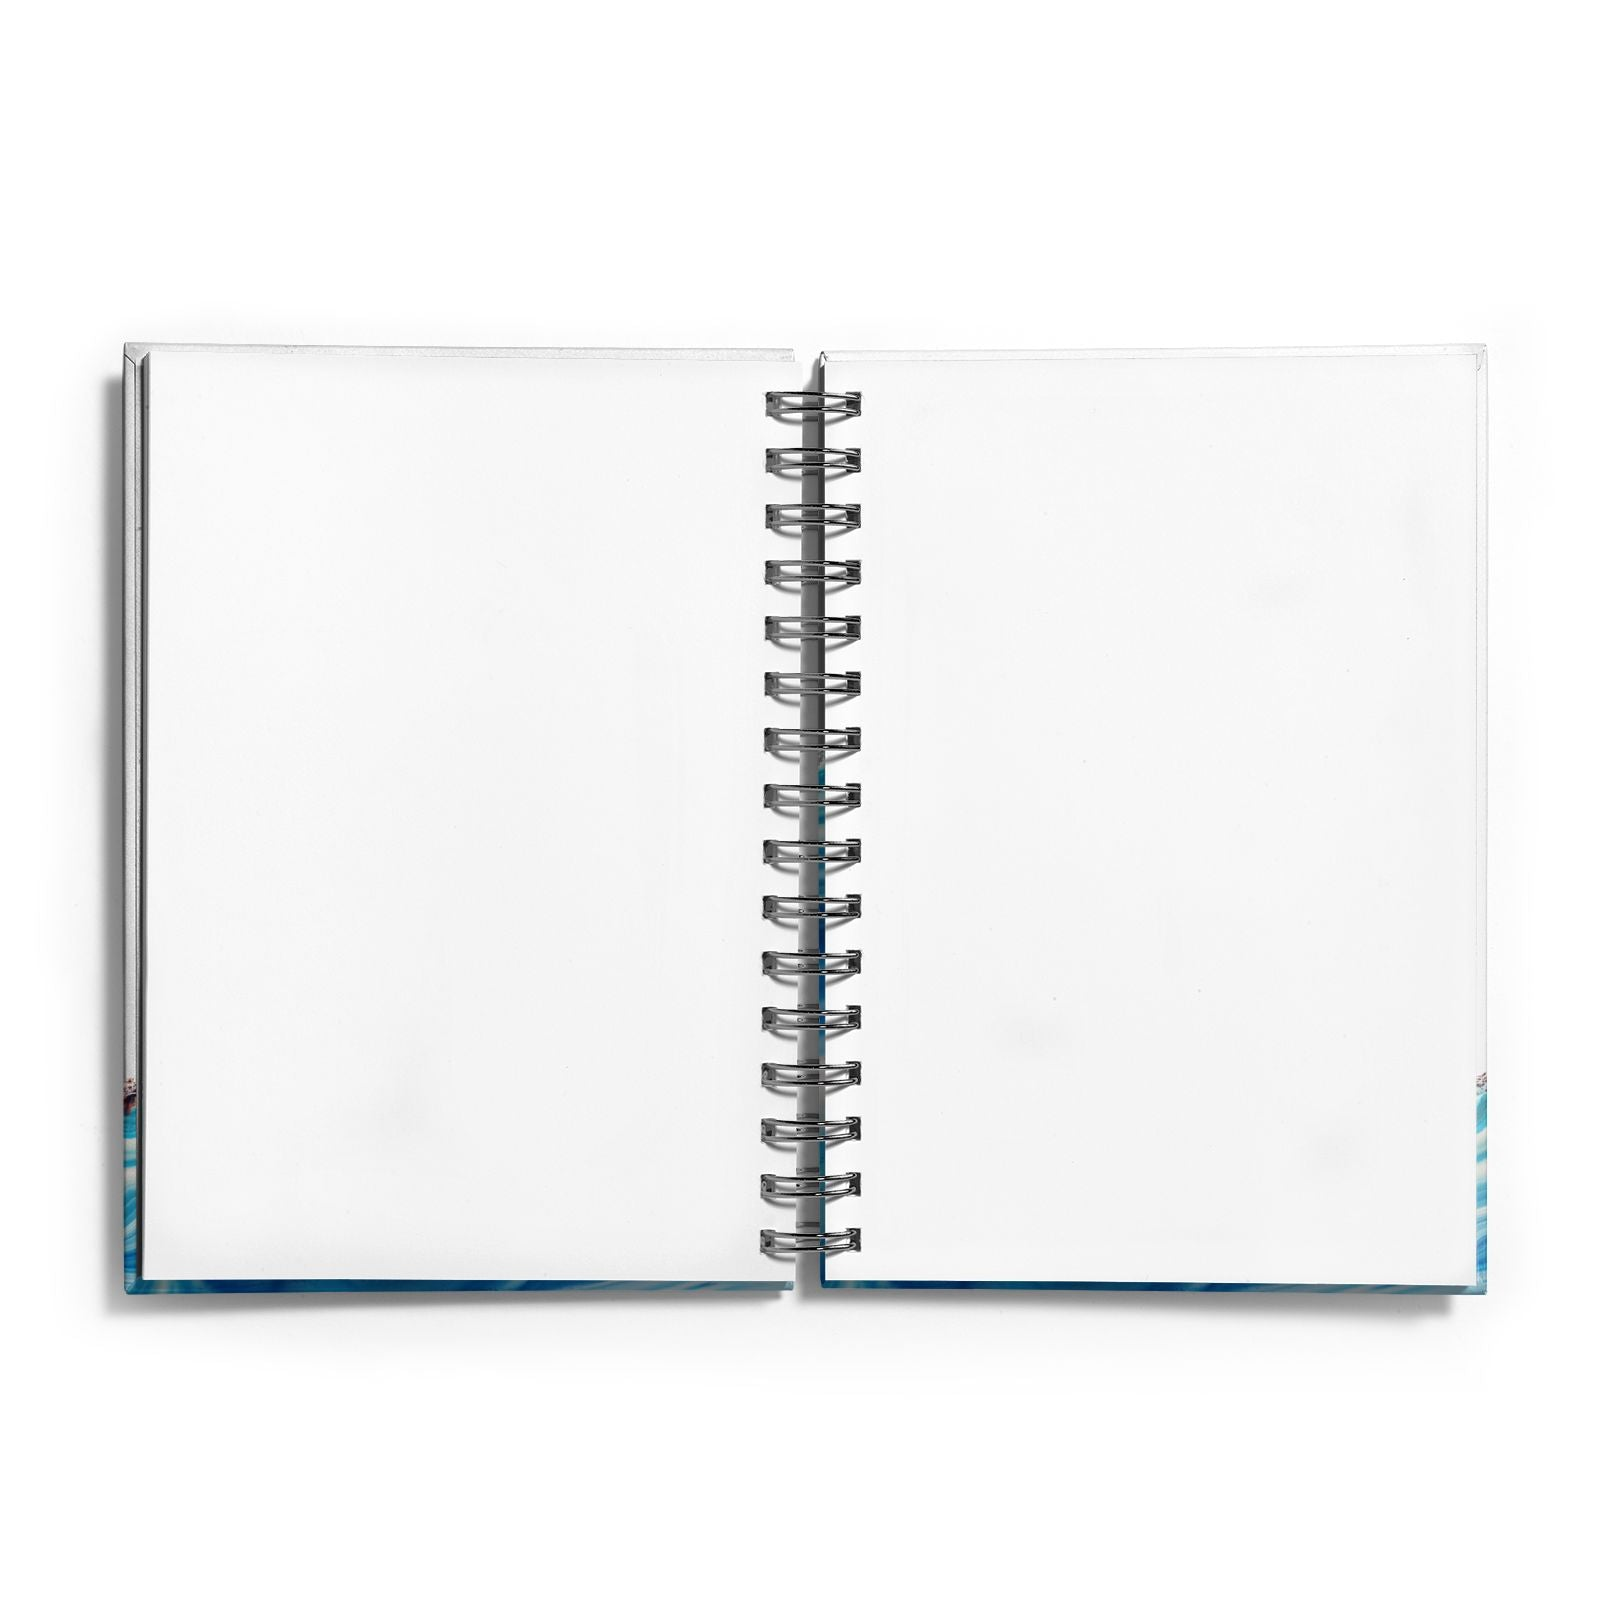 Agate Pale Blue and Bright Blue Notebook with Silver Coil and Plain Paper